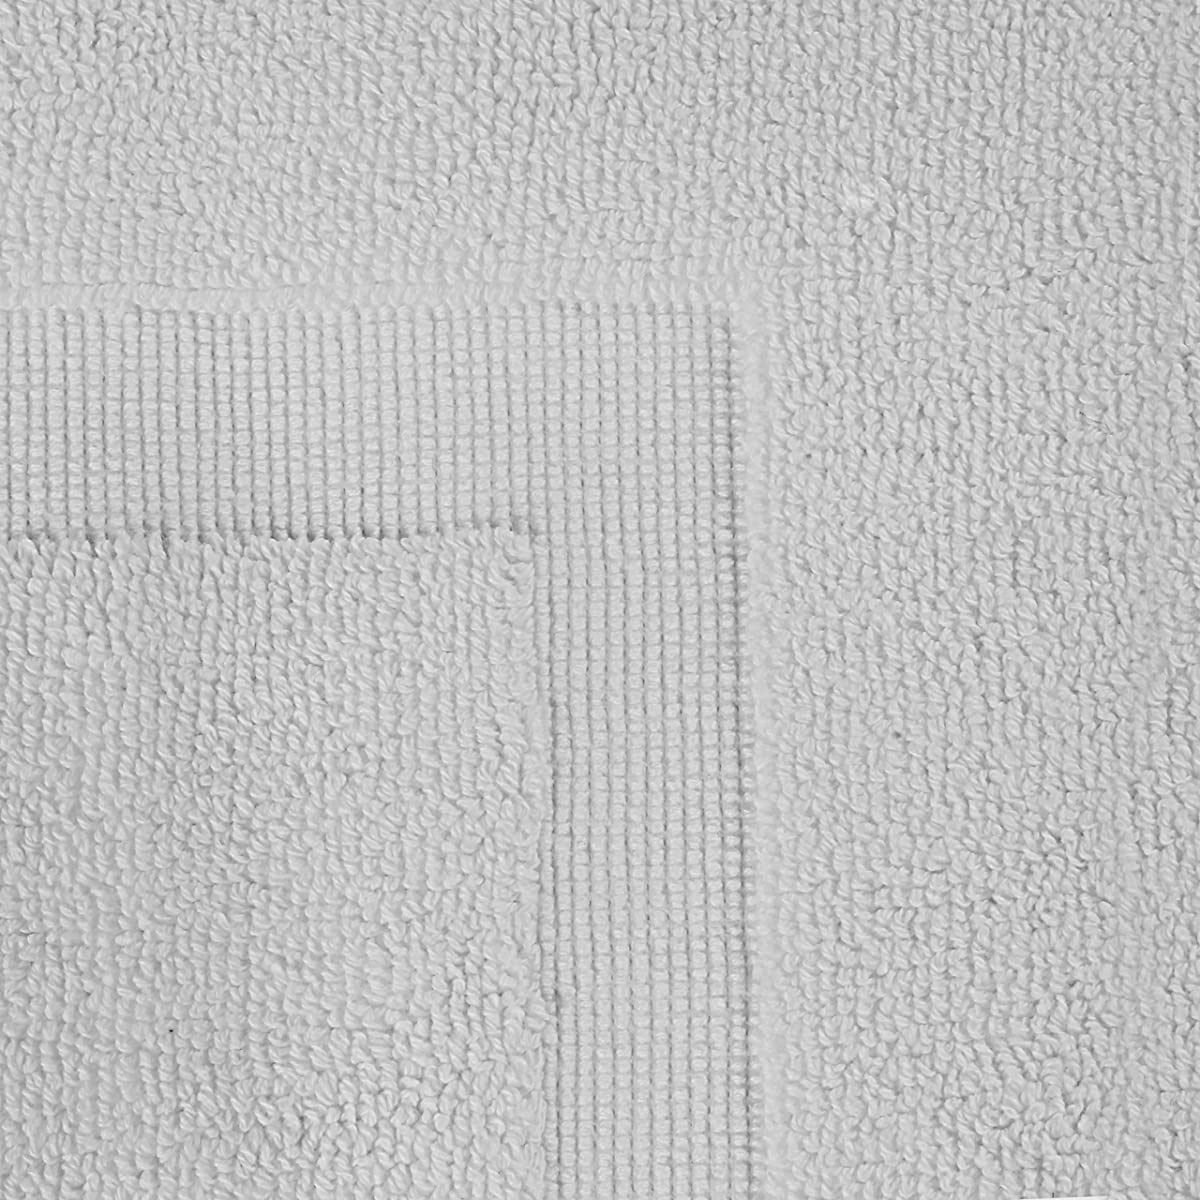 Luxury Hotel-Spa Tub-Shower Bath Mat Floor Mat - (2 Pack, White, 21 Inch by 34 Inch) - 100 Percent Ringspun Cotton, Luxury Size, Maximum Absorbency, Machine Washable - by Utopia Towels